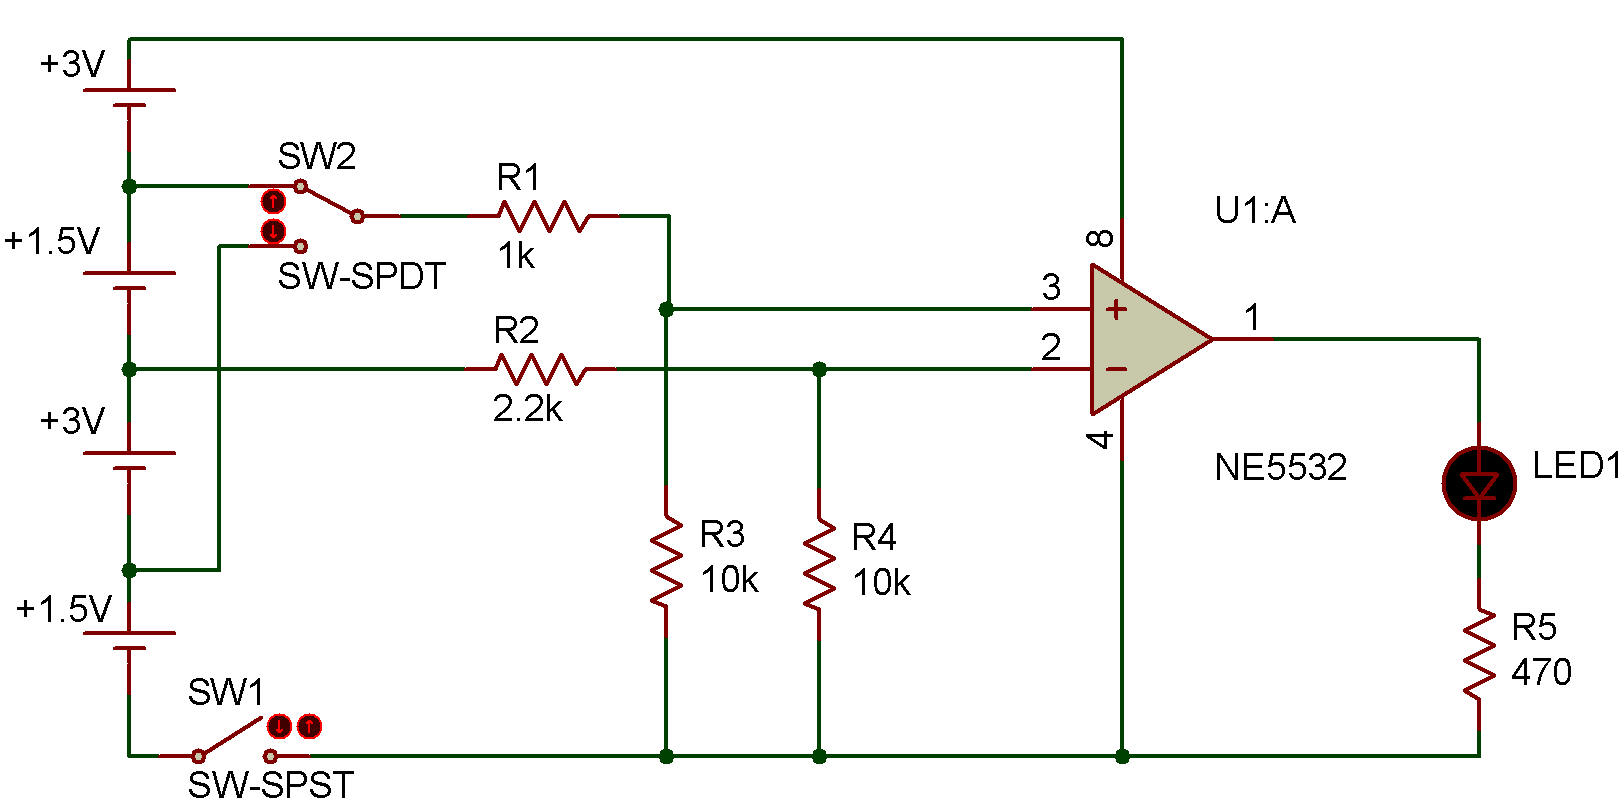 Comparator Op Amp As Circuit With This The For Section You Will Need Some Basic Knowledge About Operational Amplifier Integrated First We Can Use One Power Source Both